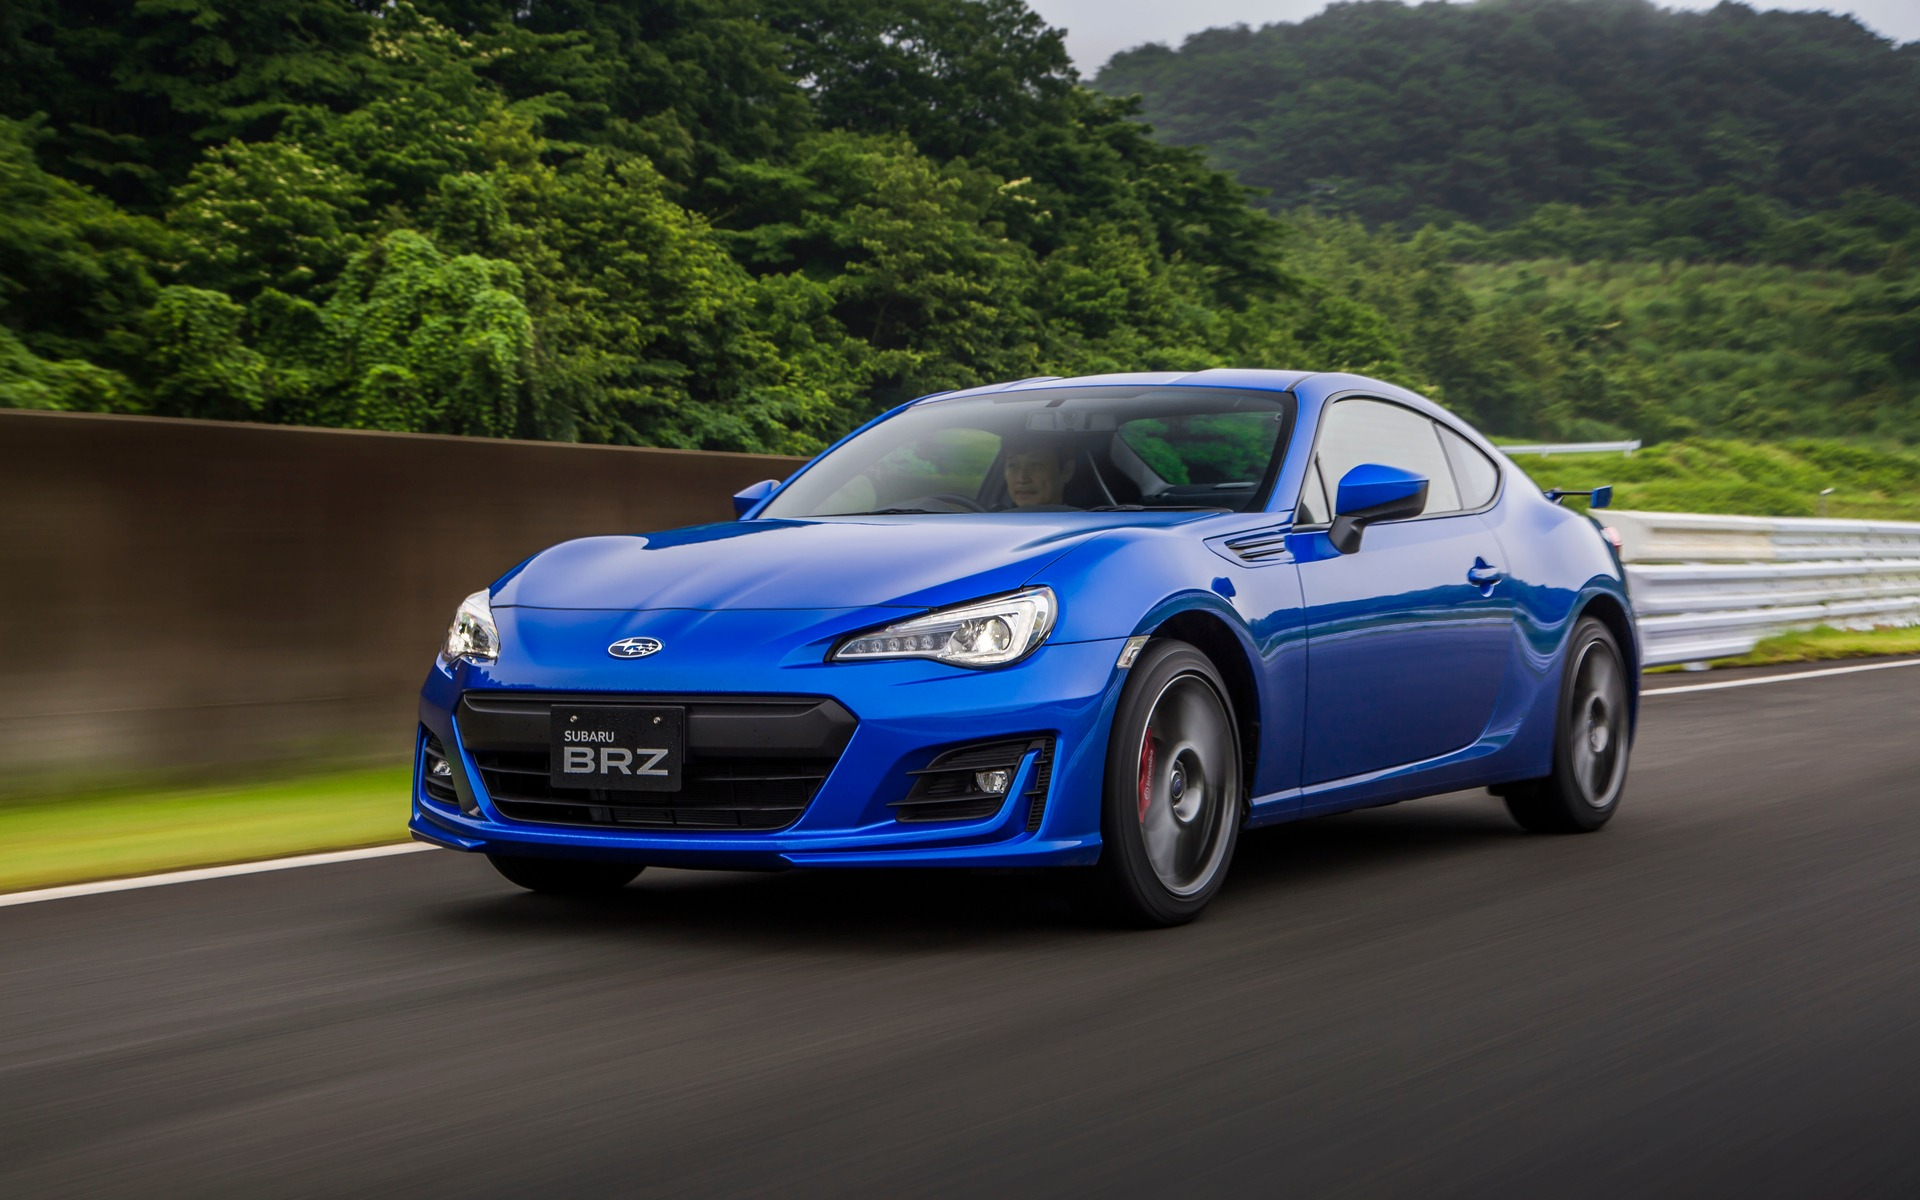 Brz Sti Specs >> A Subaru Brz Sti In The Cards The Car Guide